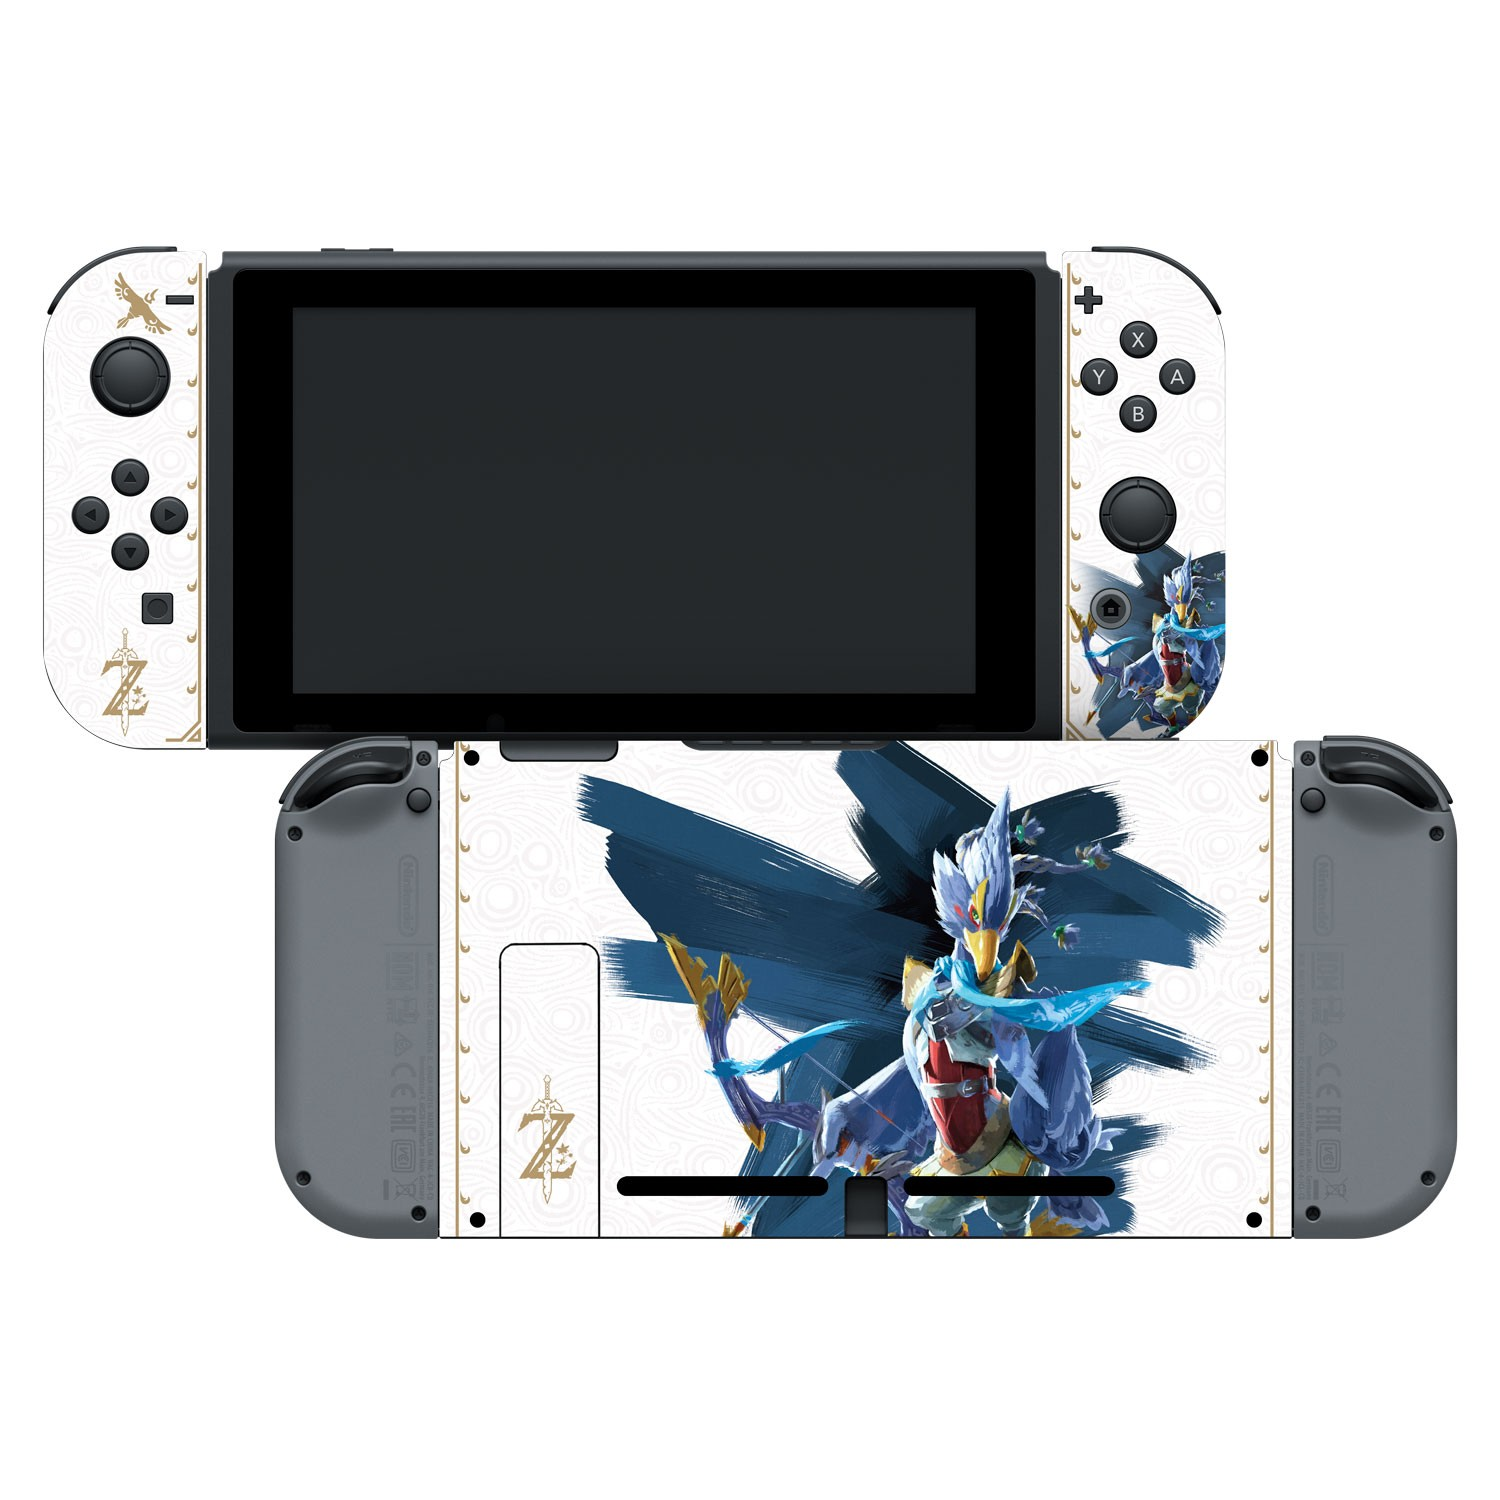 Nintendo Switch Skin & Screen Protector Set Officially Licensed by Nintendo - The Legend of Zelda: Breath of the Wild: Revali White Pattern